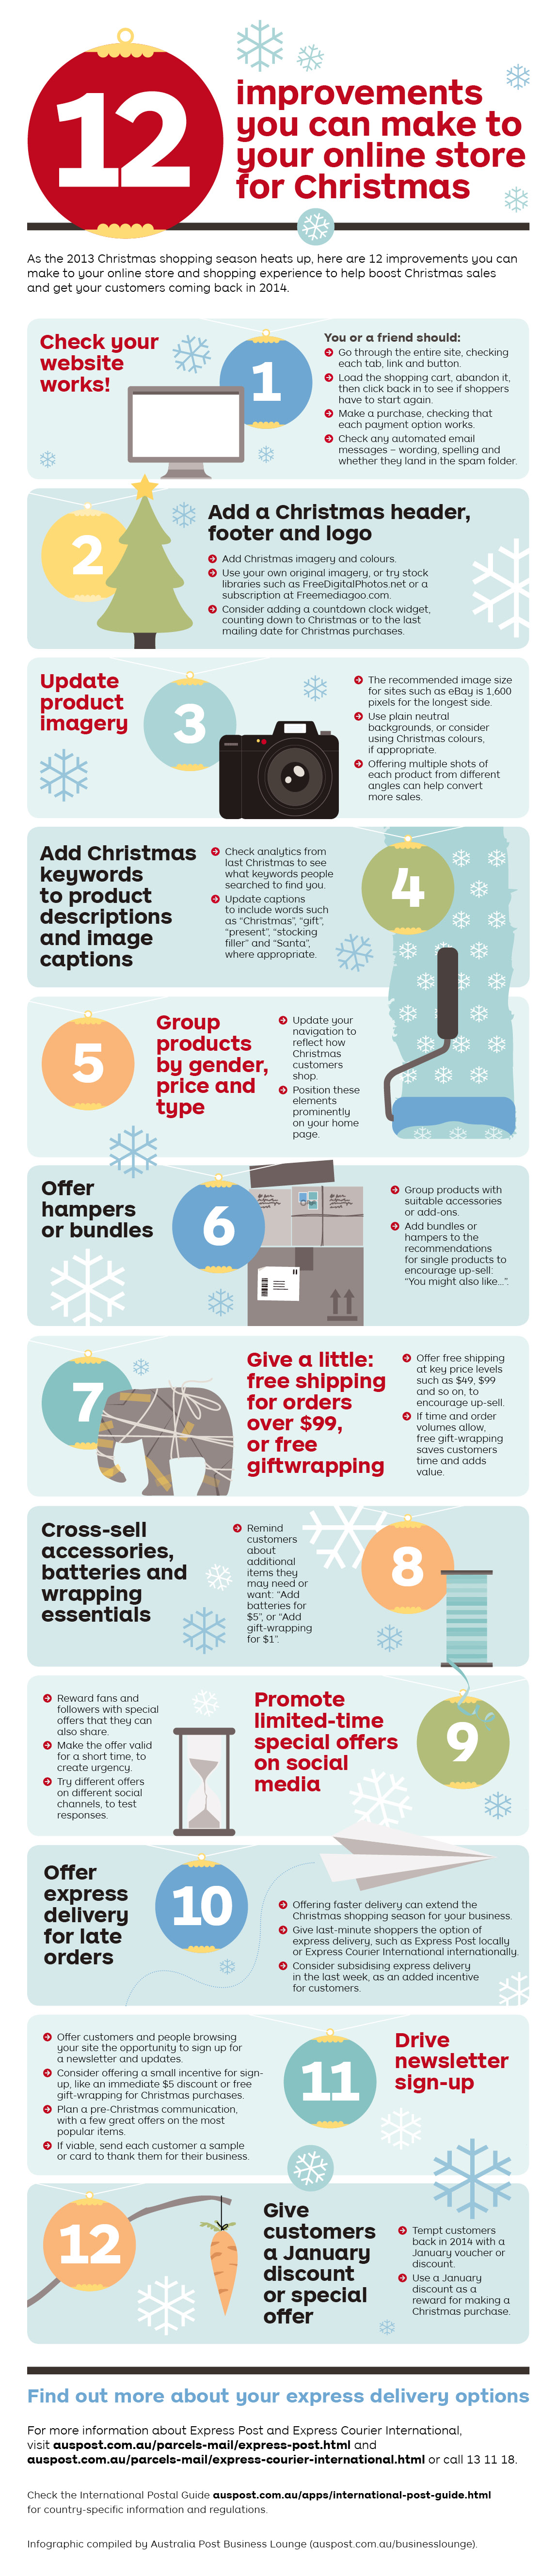 12 days of e-commerce infographic